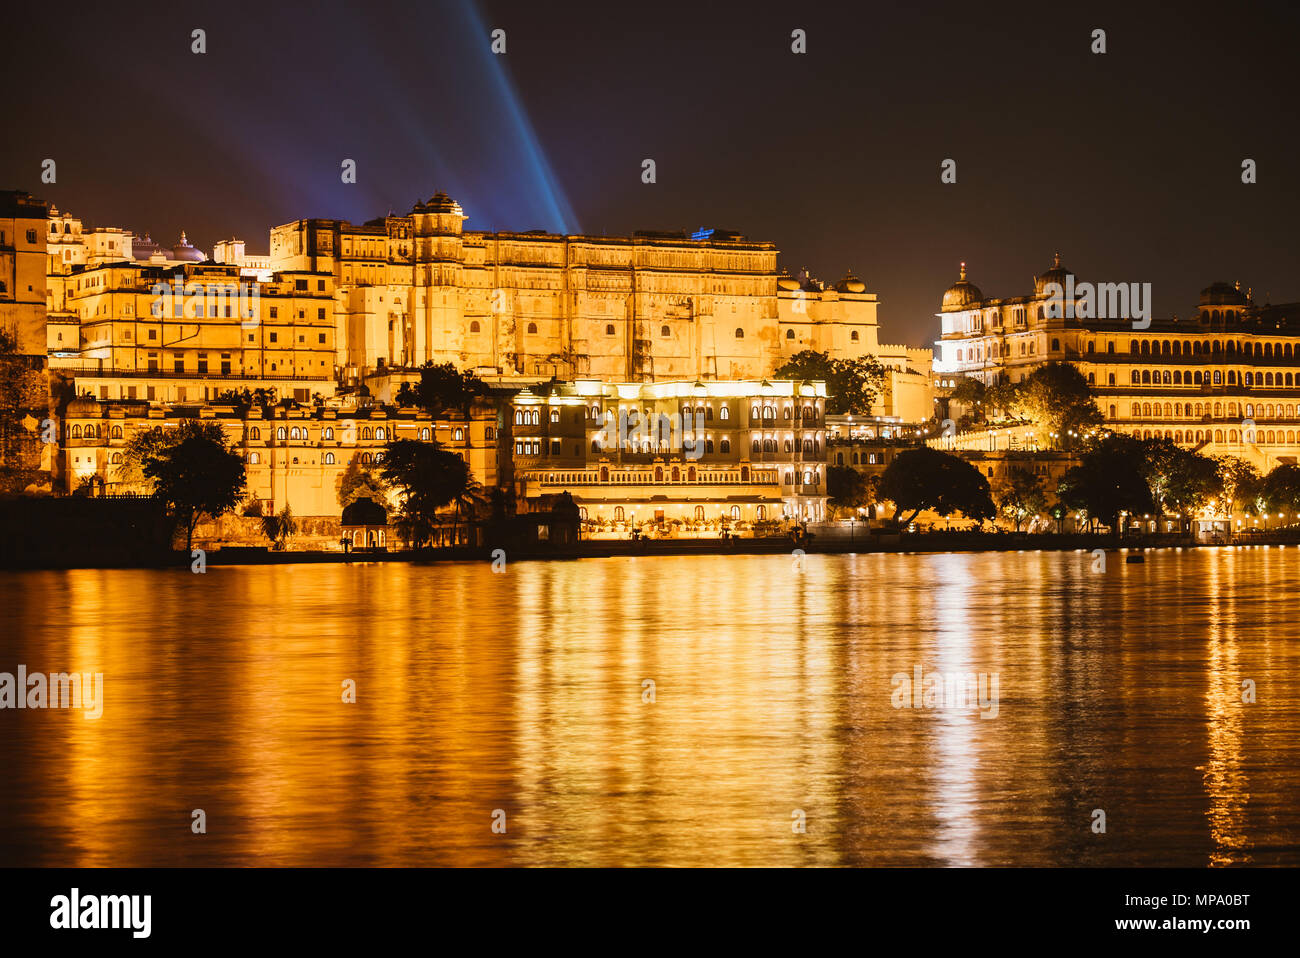 View of the city palace at night from the water in Udaipur, India - Stock Image